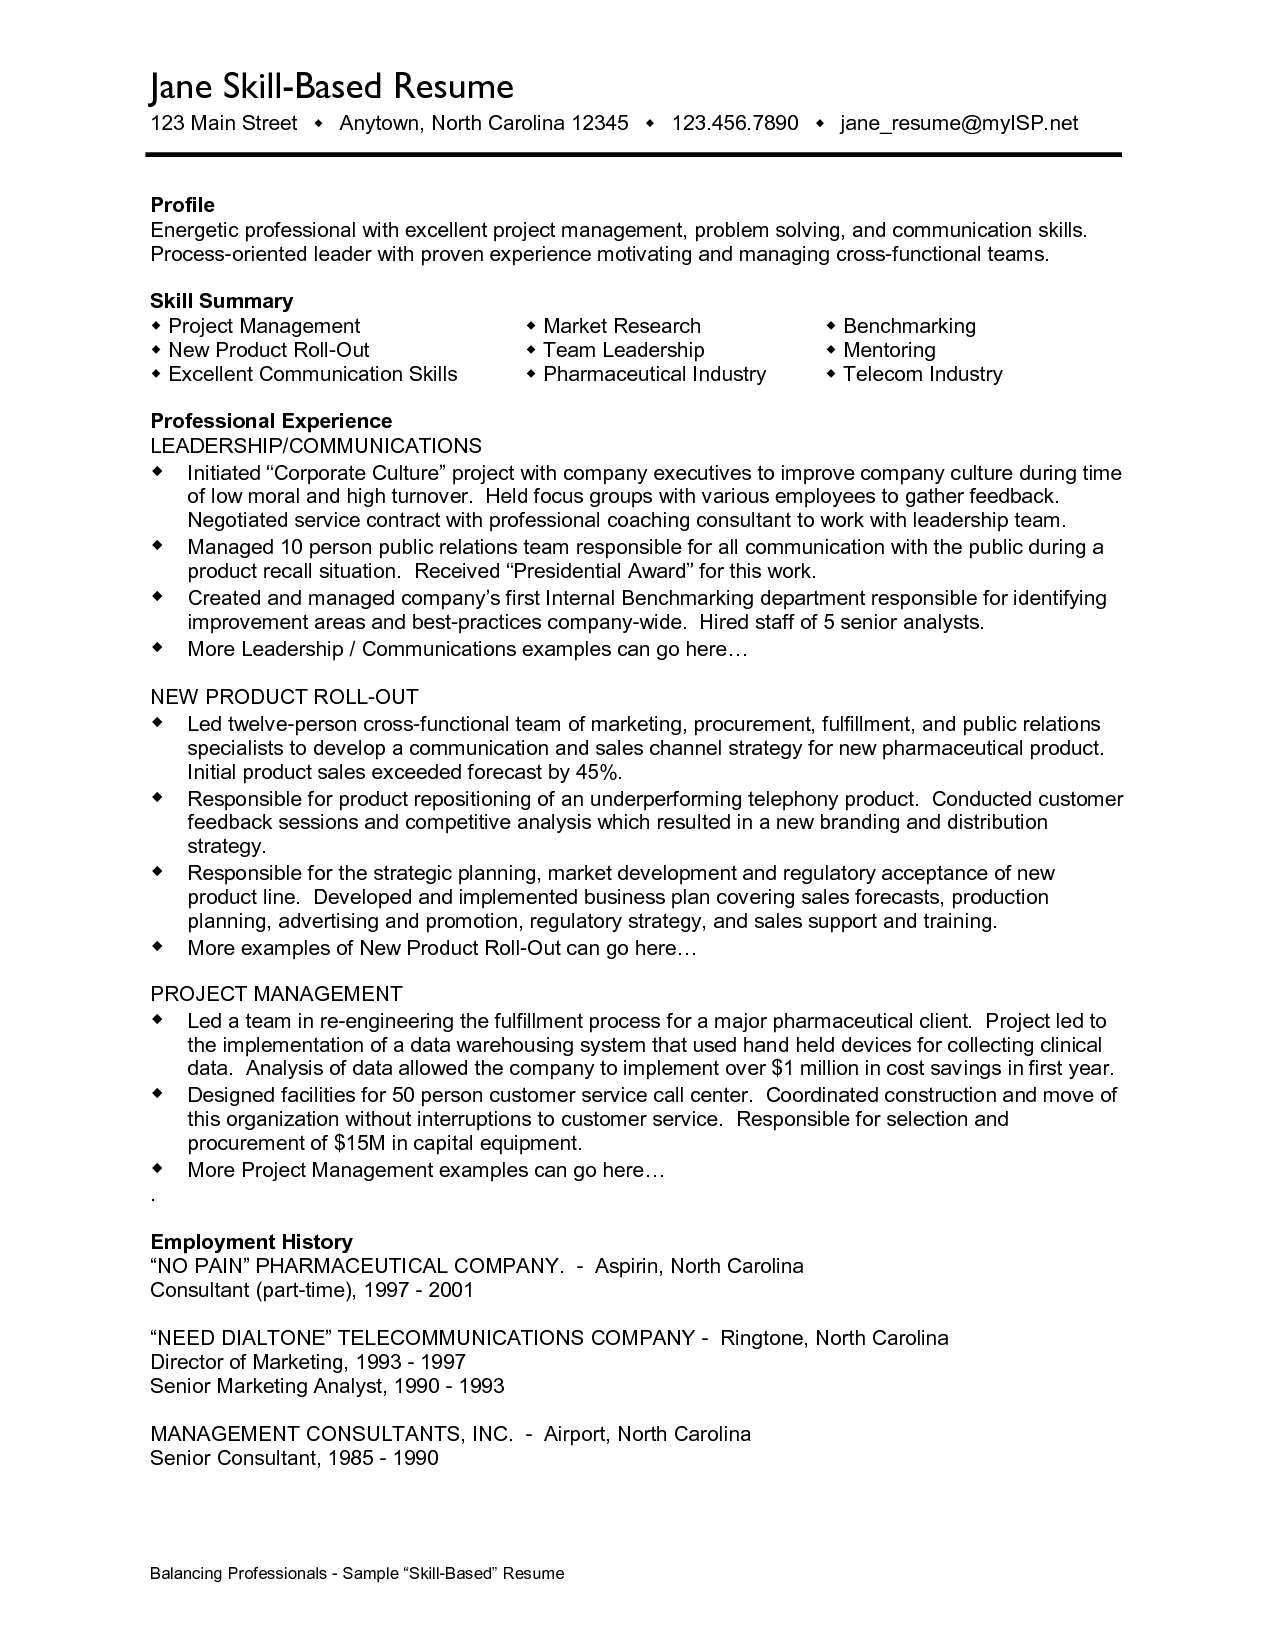 Job Skills Resume Job Resume Communication Skills  Httpwwwresumecareerjob